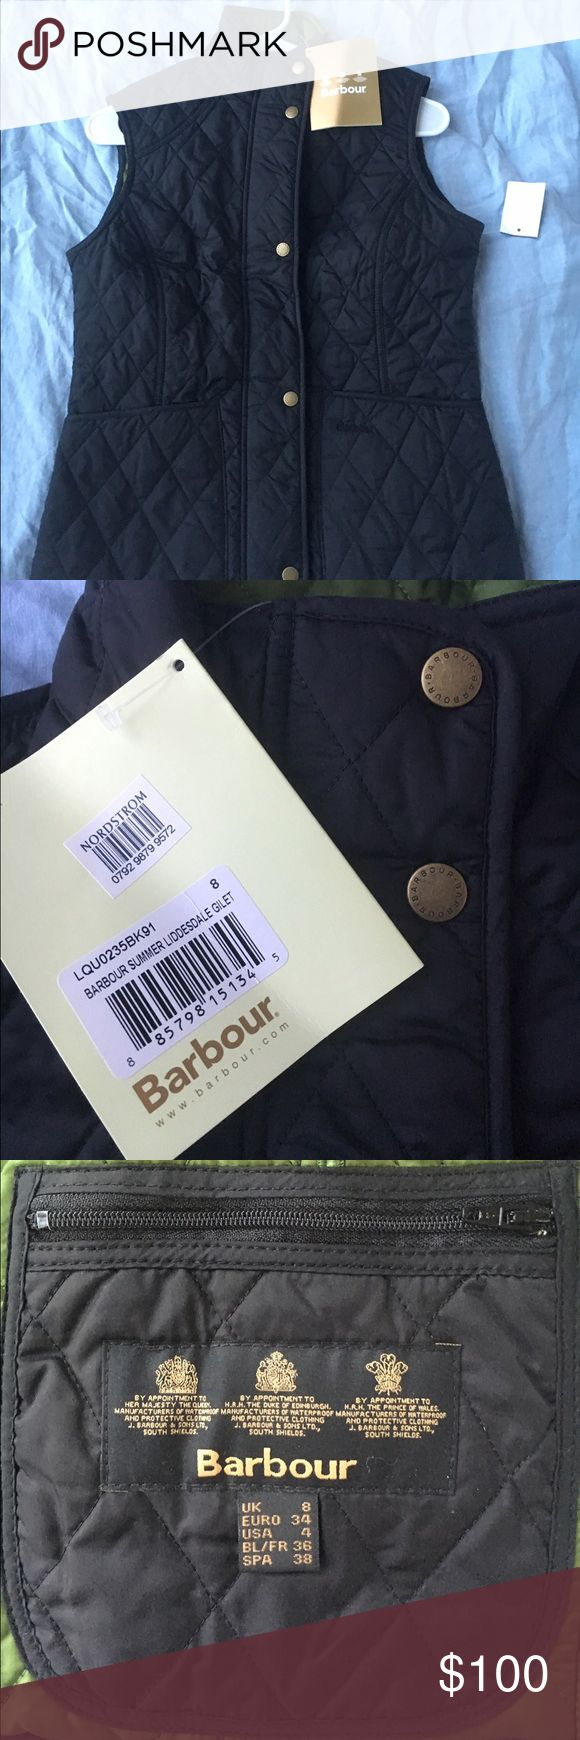 Barbour vest NWT Barbour Vest, purchased in two sizes and the other one was the right fit! Barbour Jackets & Coats Vests